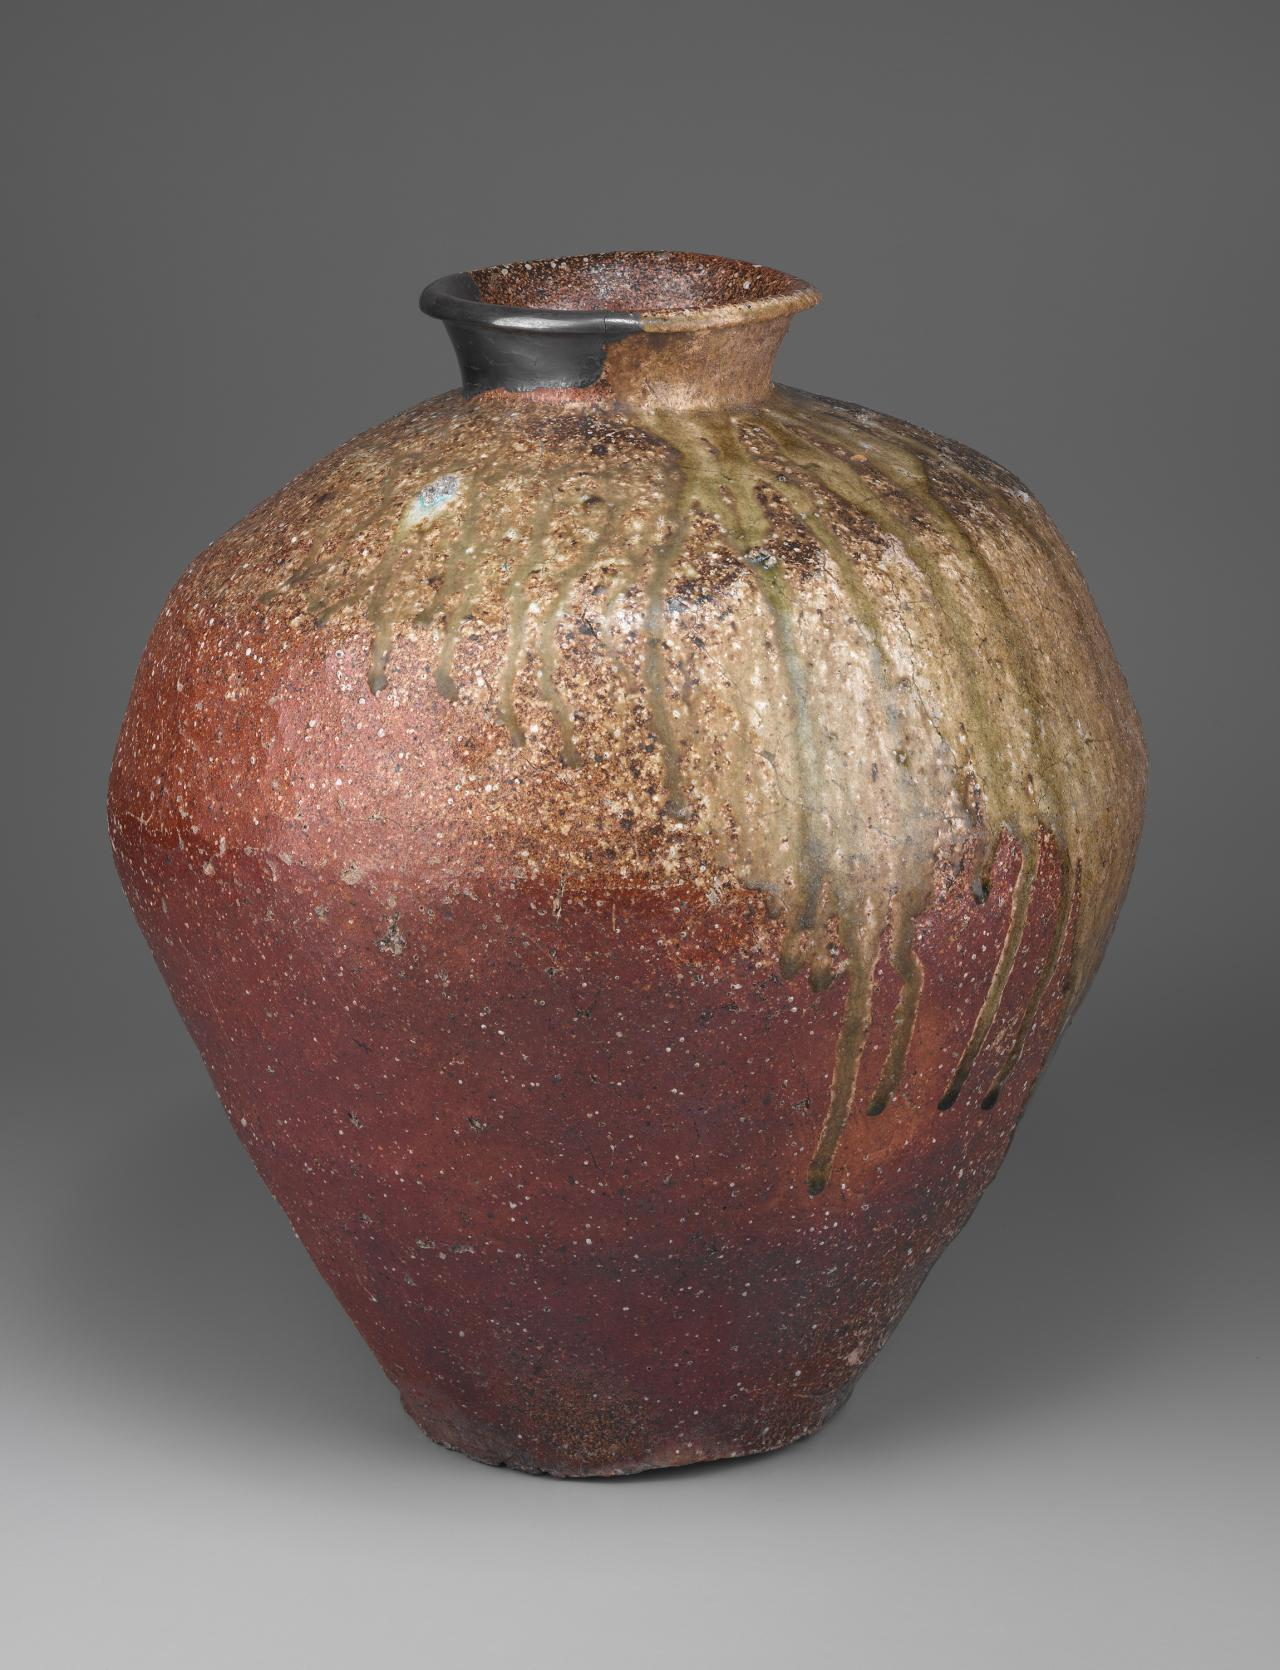 JAPANESE Jar (15th century-16th century)